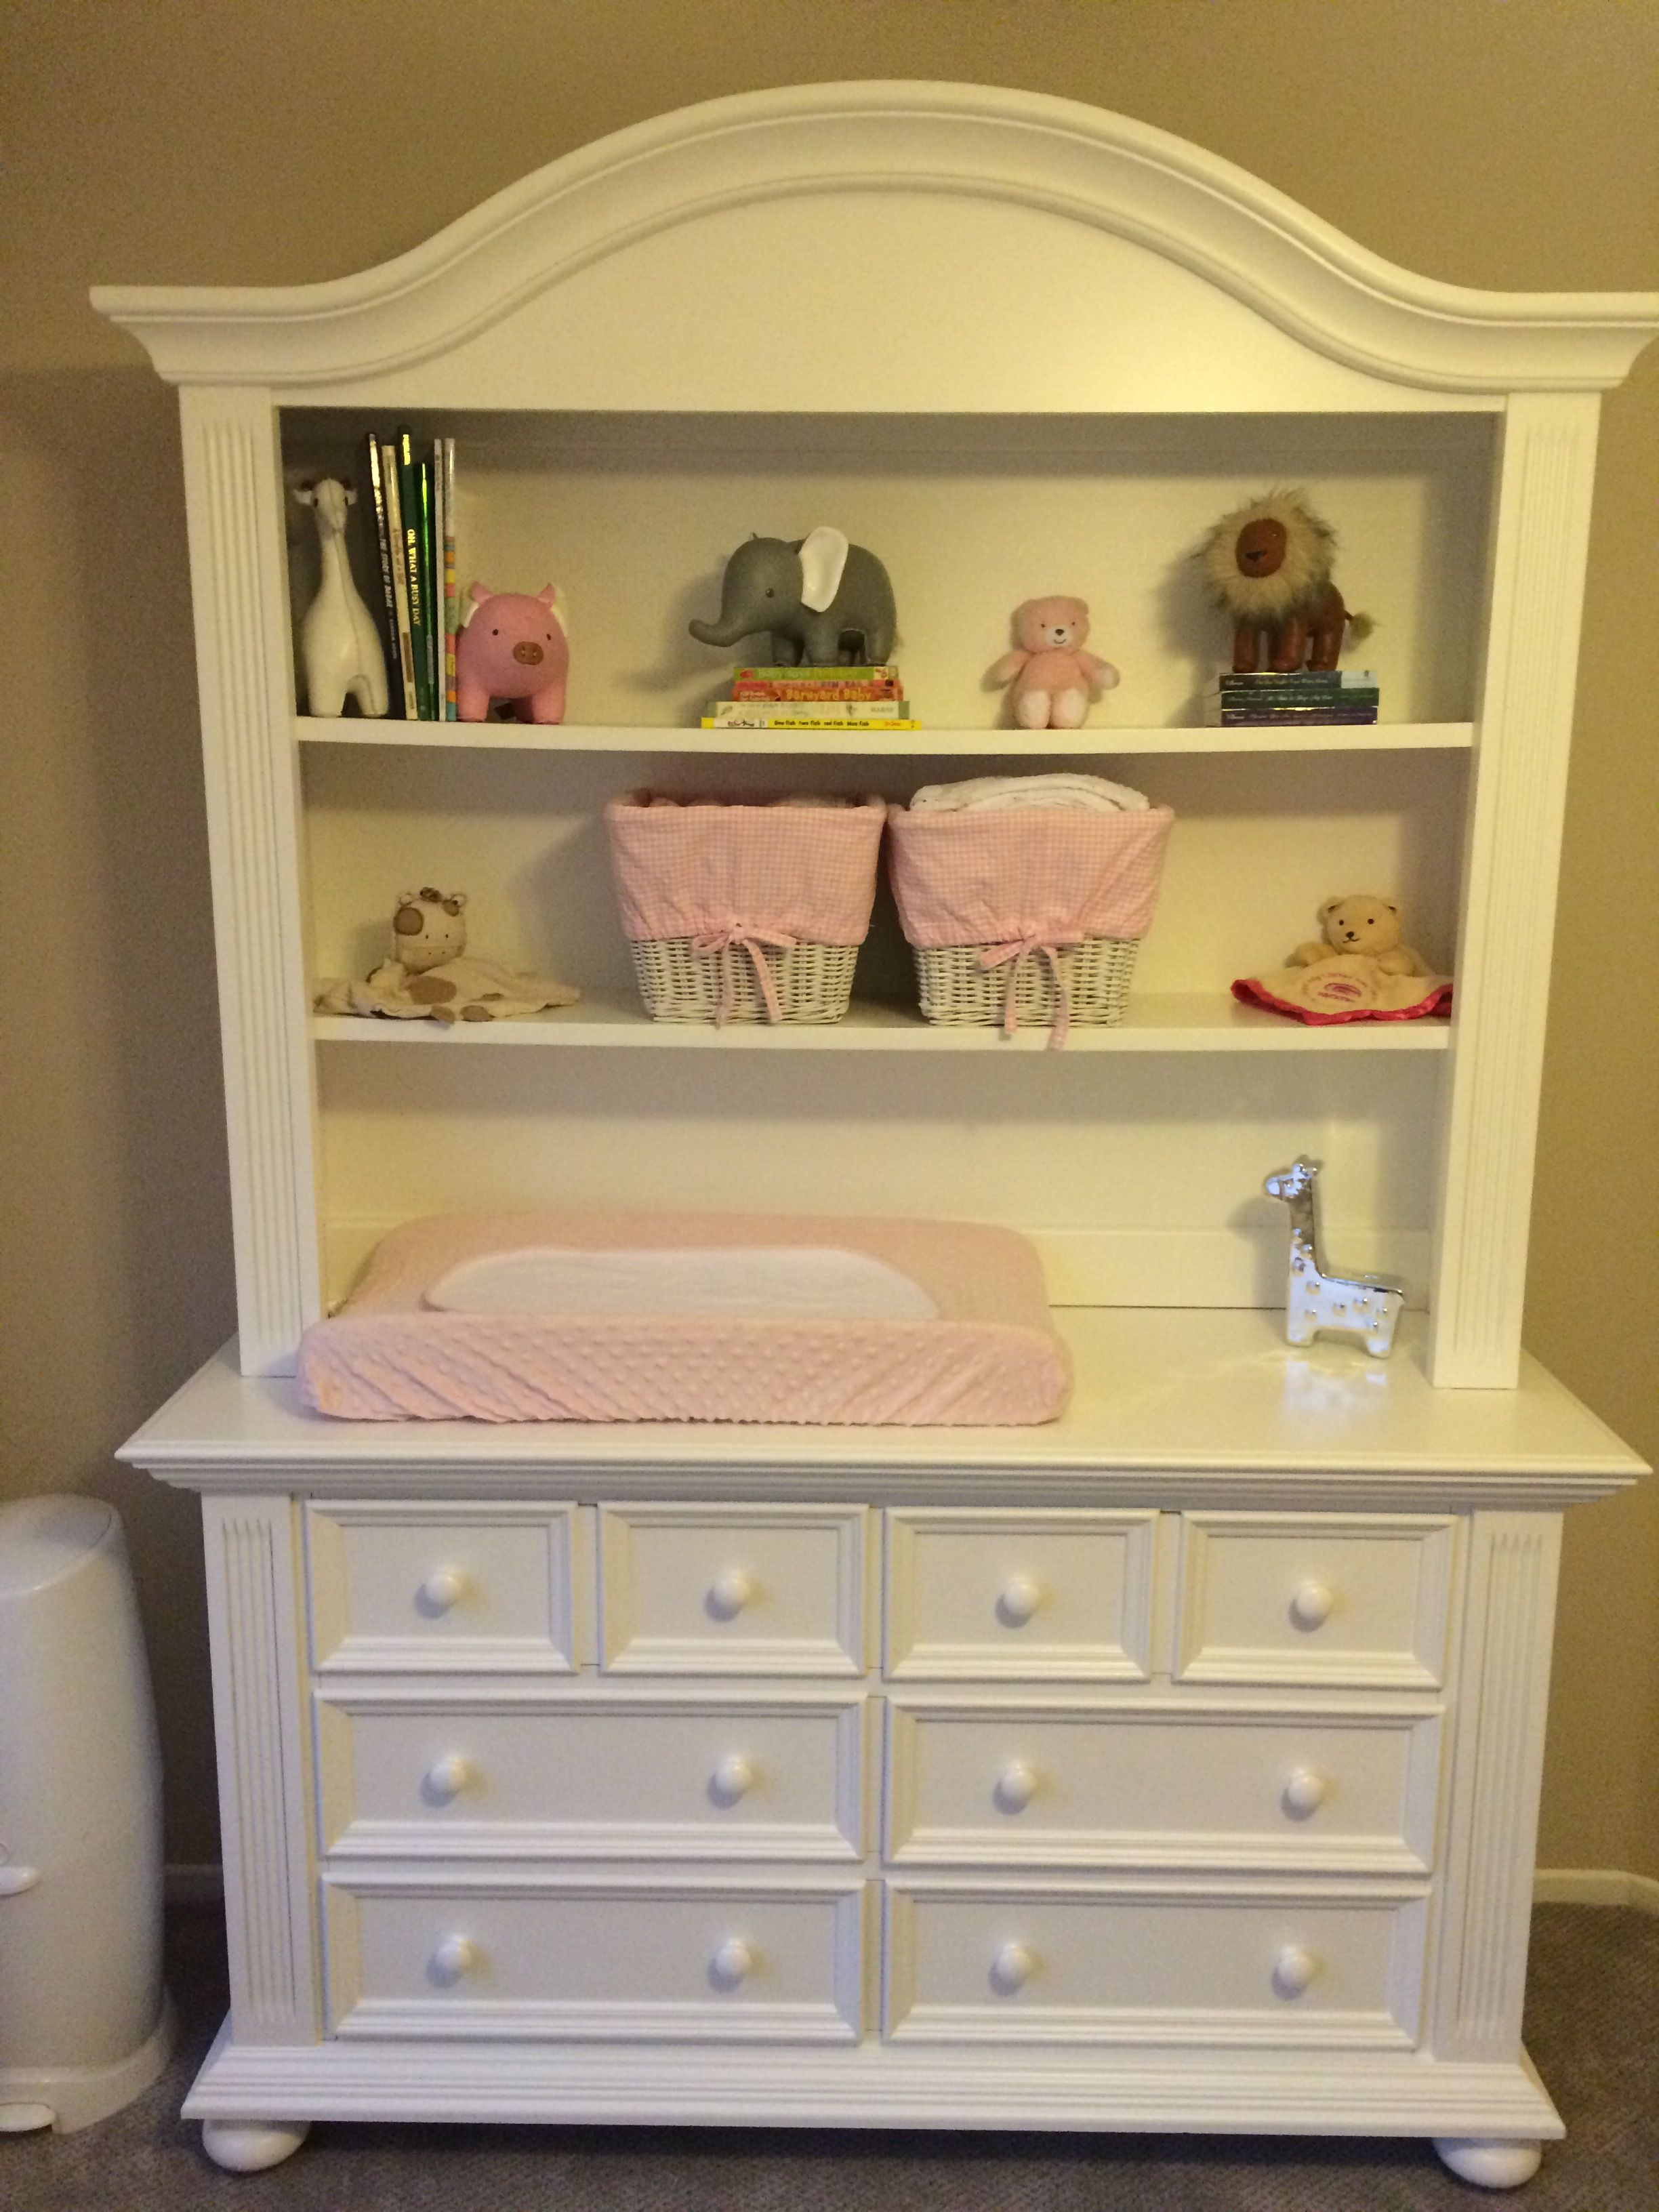 Pottery Barn Kitchen Hutch Ceramic Sinks White And Dresser From Buy Baby Pink